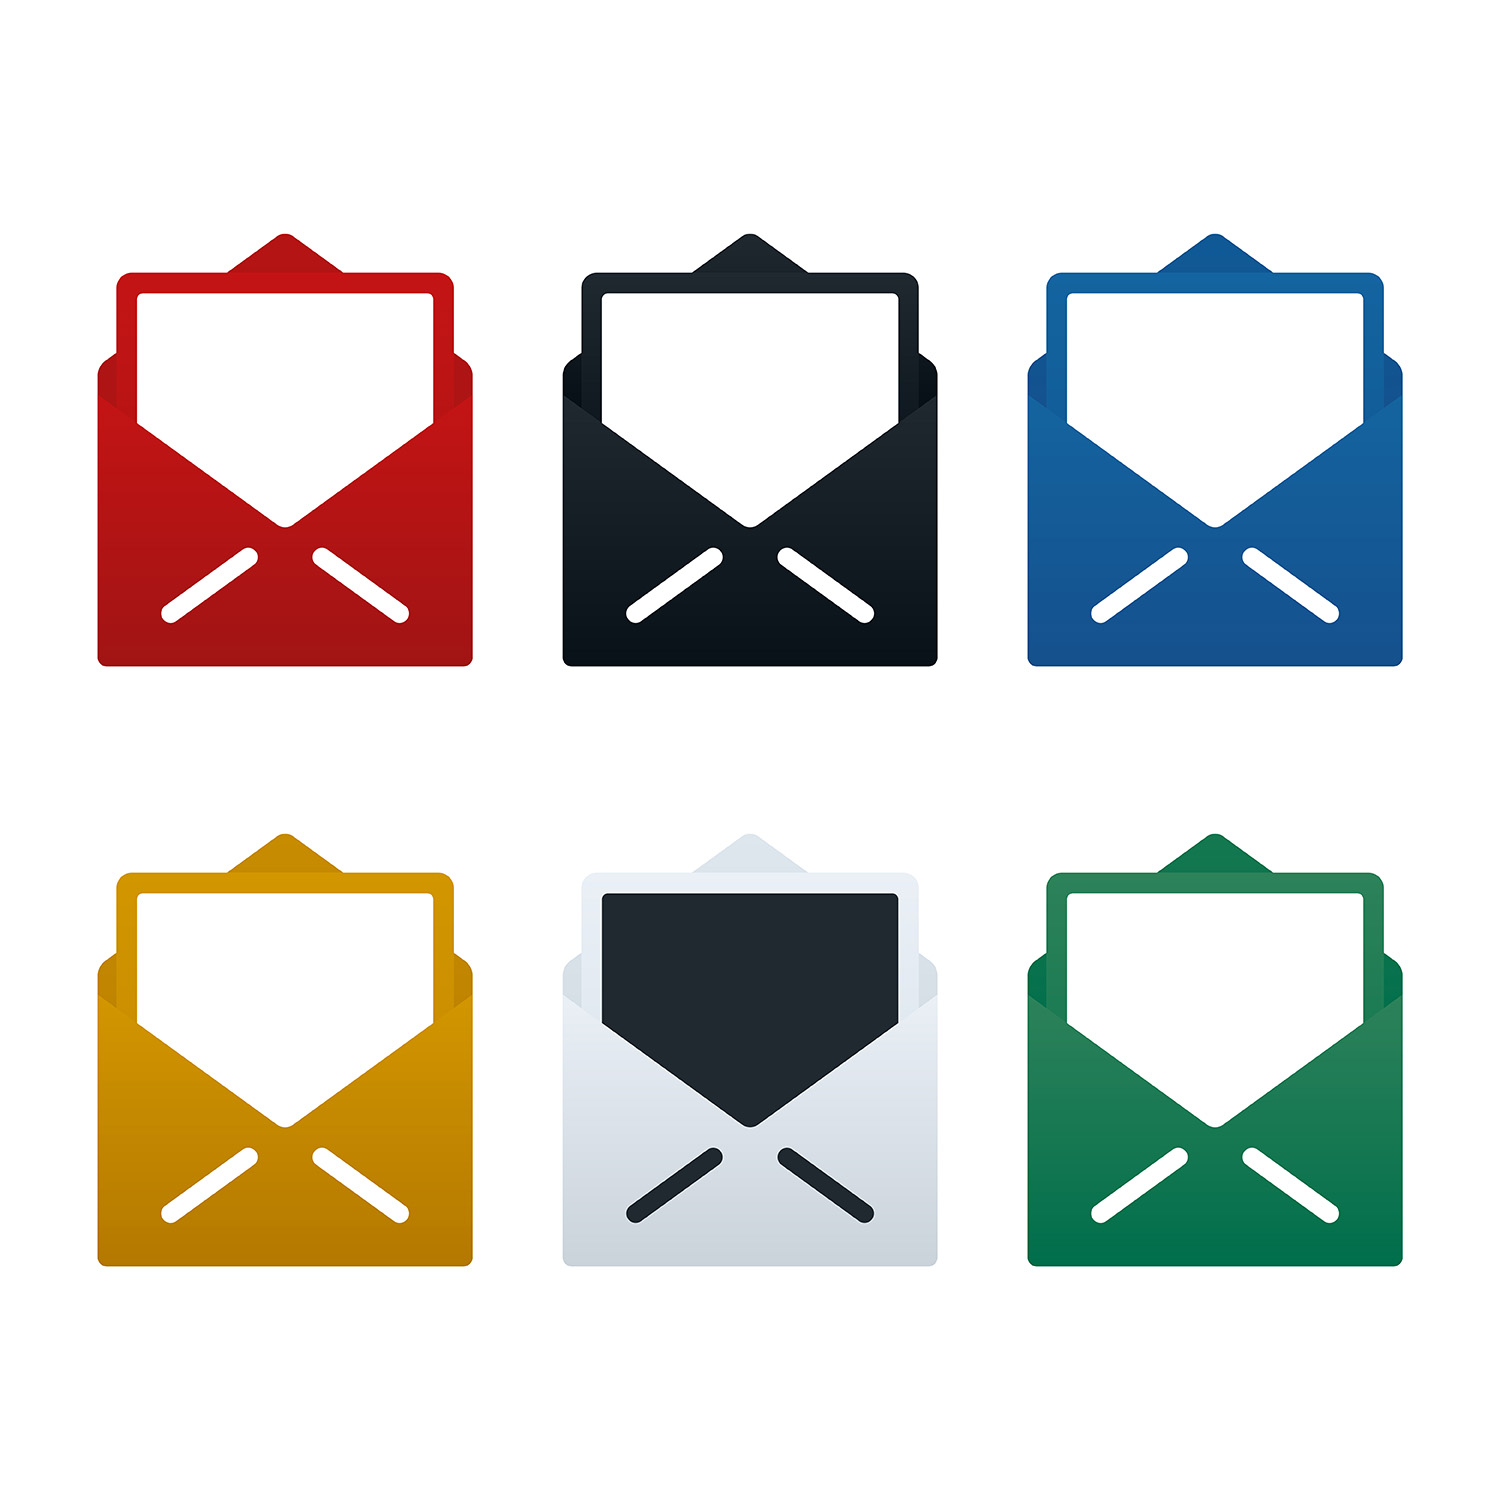 Postcards and open envelope icons 662131 - Download Free